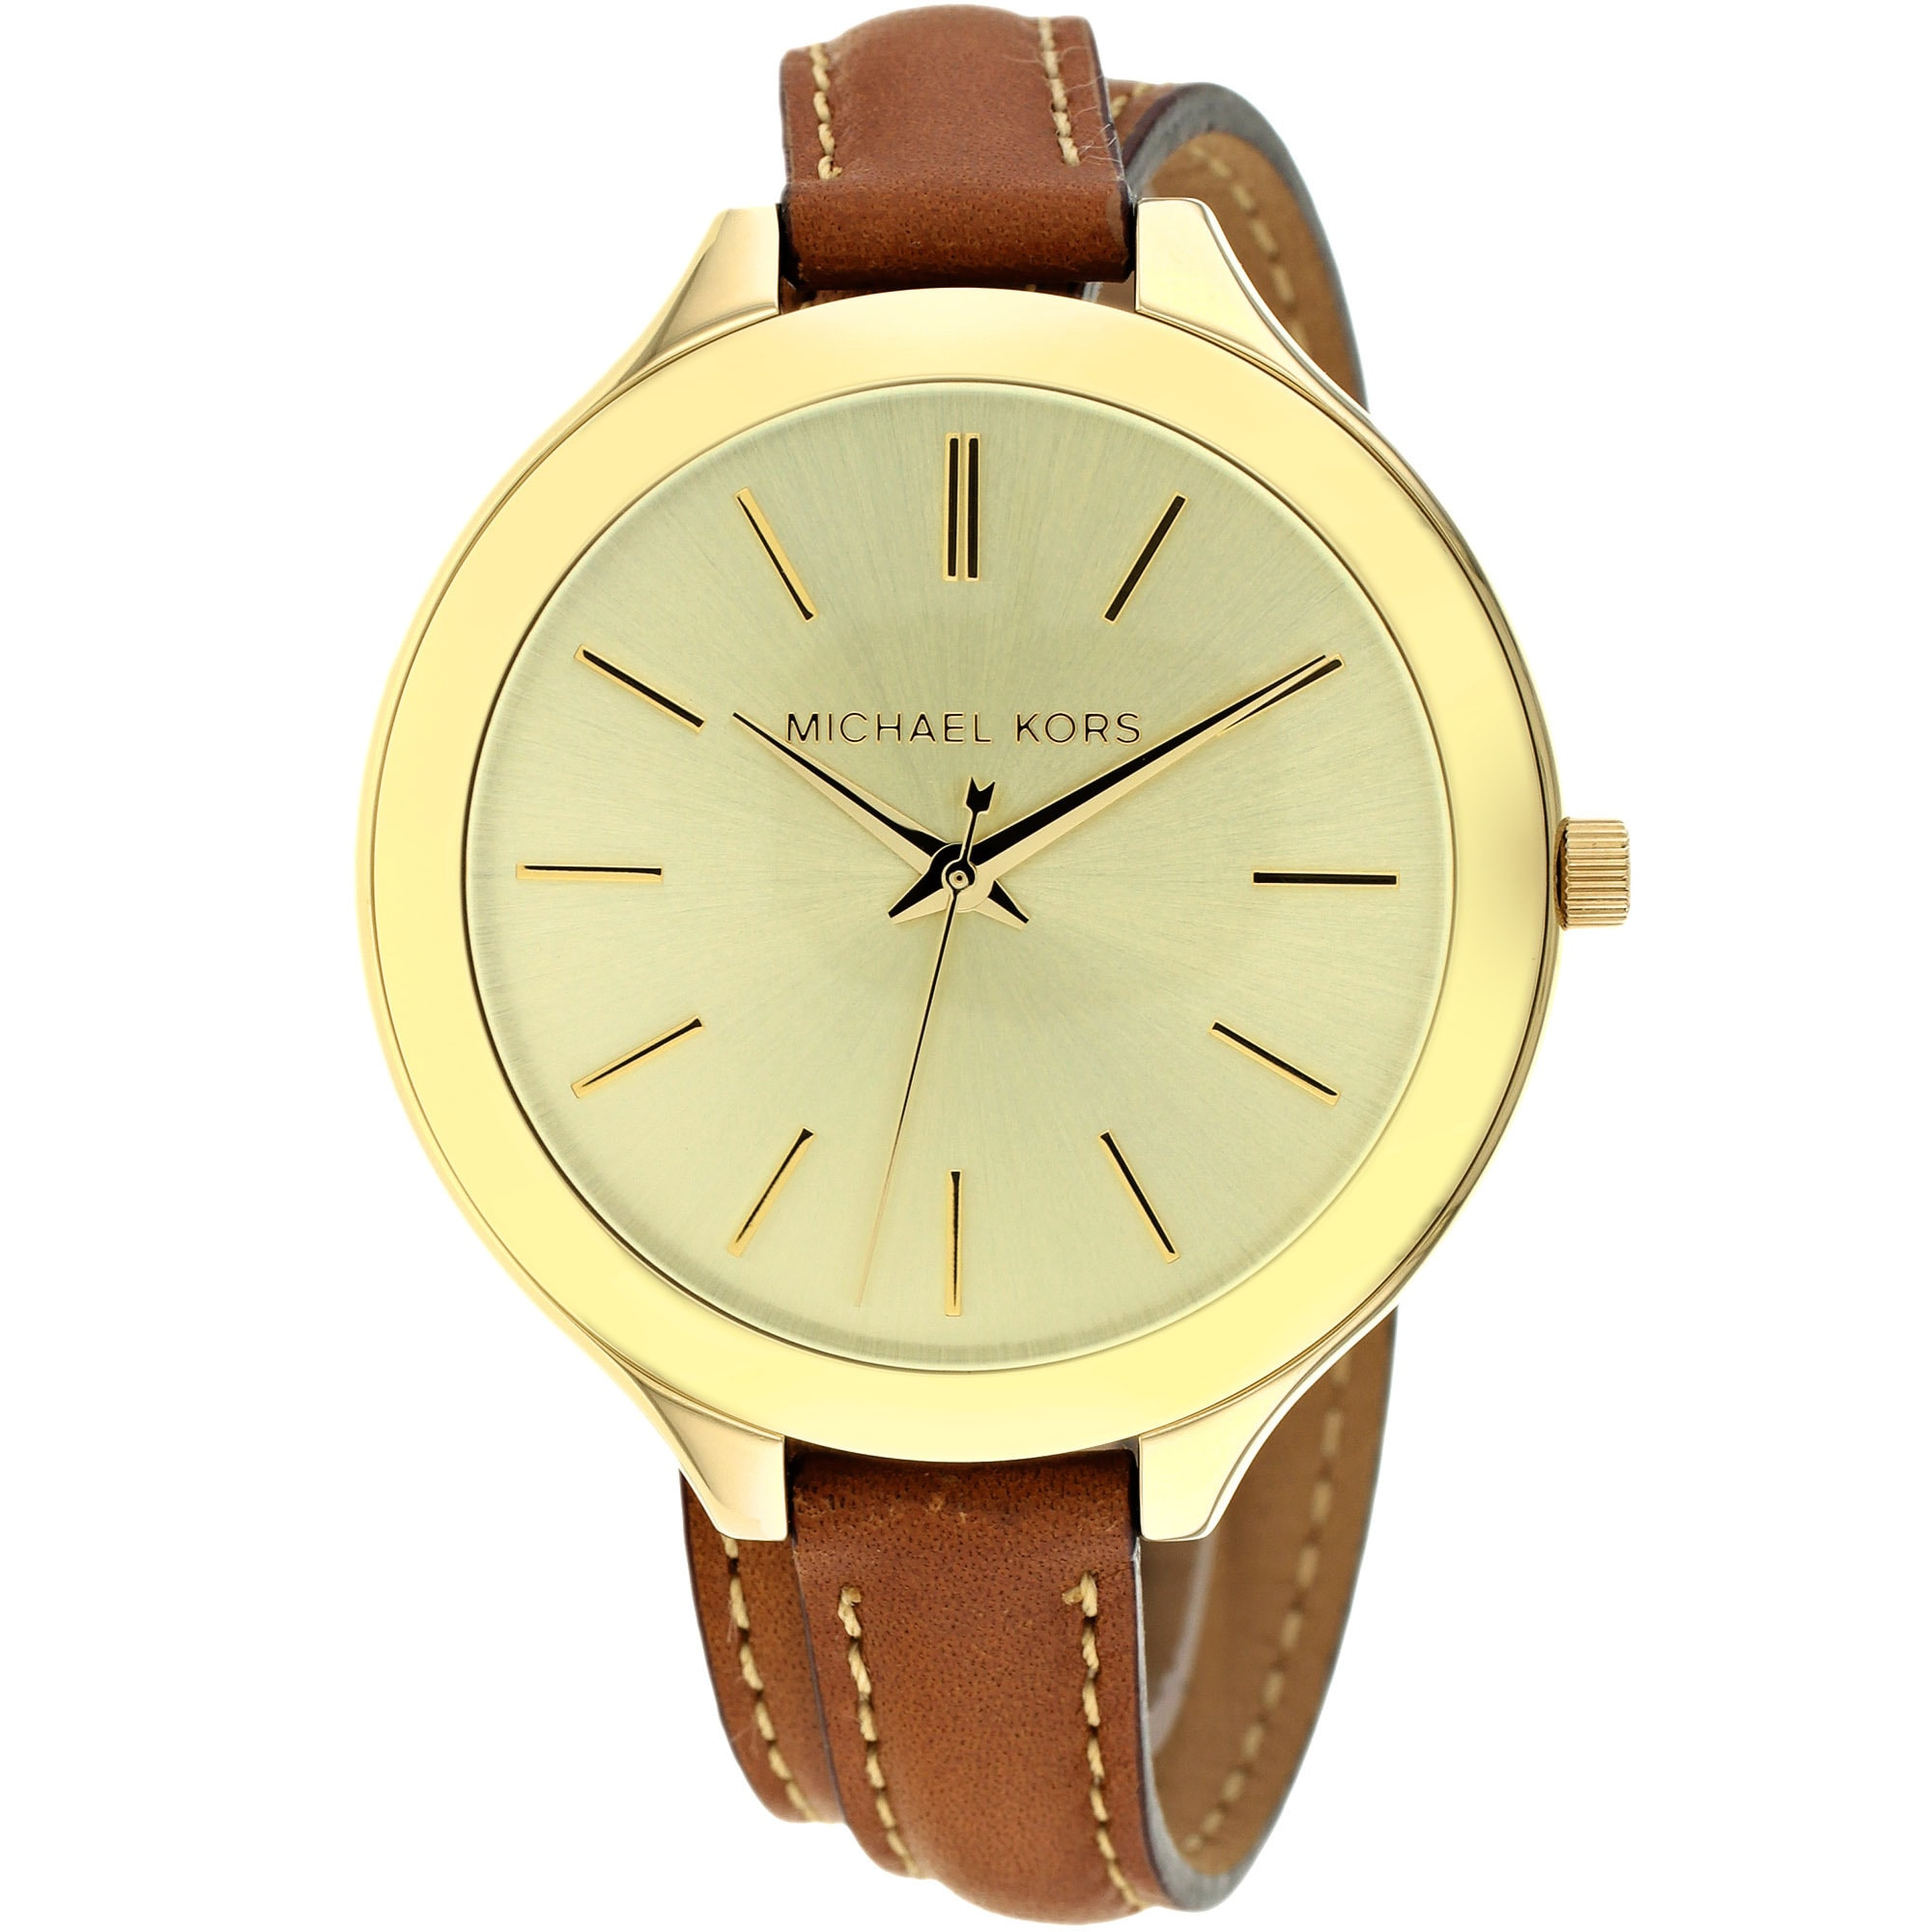 0fbc2a32d8a7 Shop Michael Kors Women s MK2256  Runway  Slim Double Leather Watch - Gold  - Free Shipping Today - Overstock - 8685344